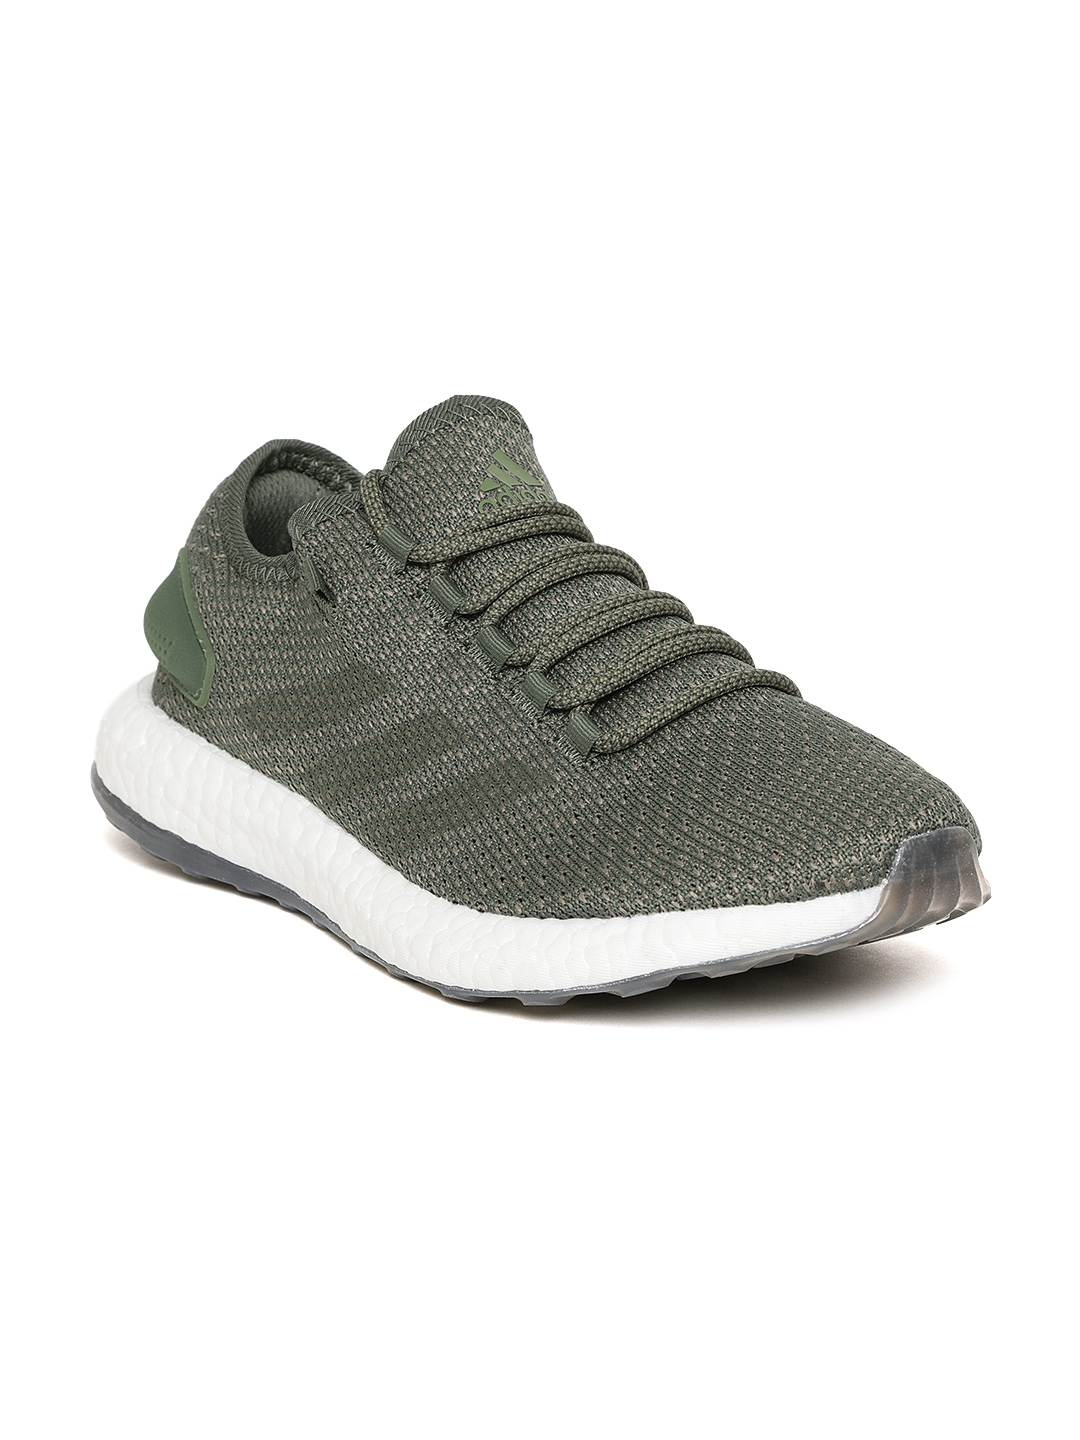 606d9e37efa Buy ADIDAS Men Olive Green Pureboost Clima Running Shoes - Sports ...